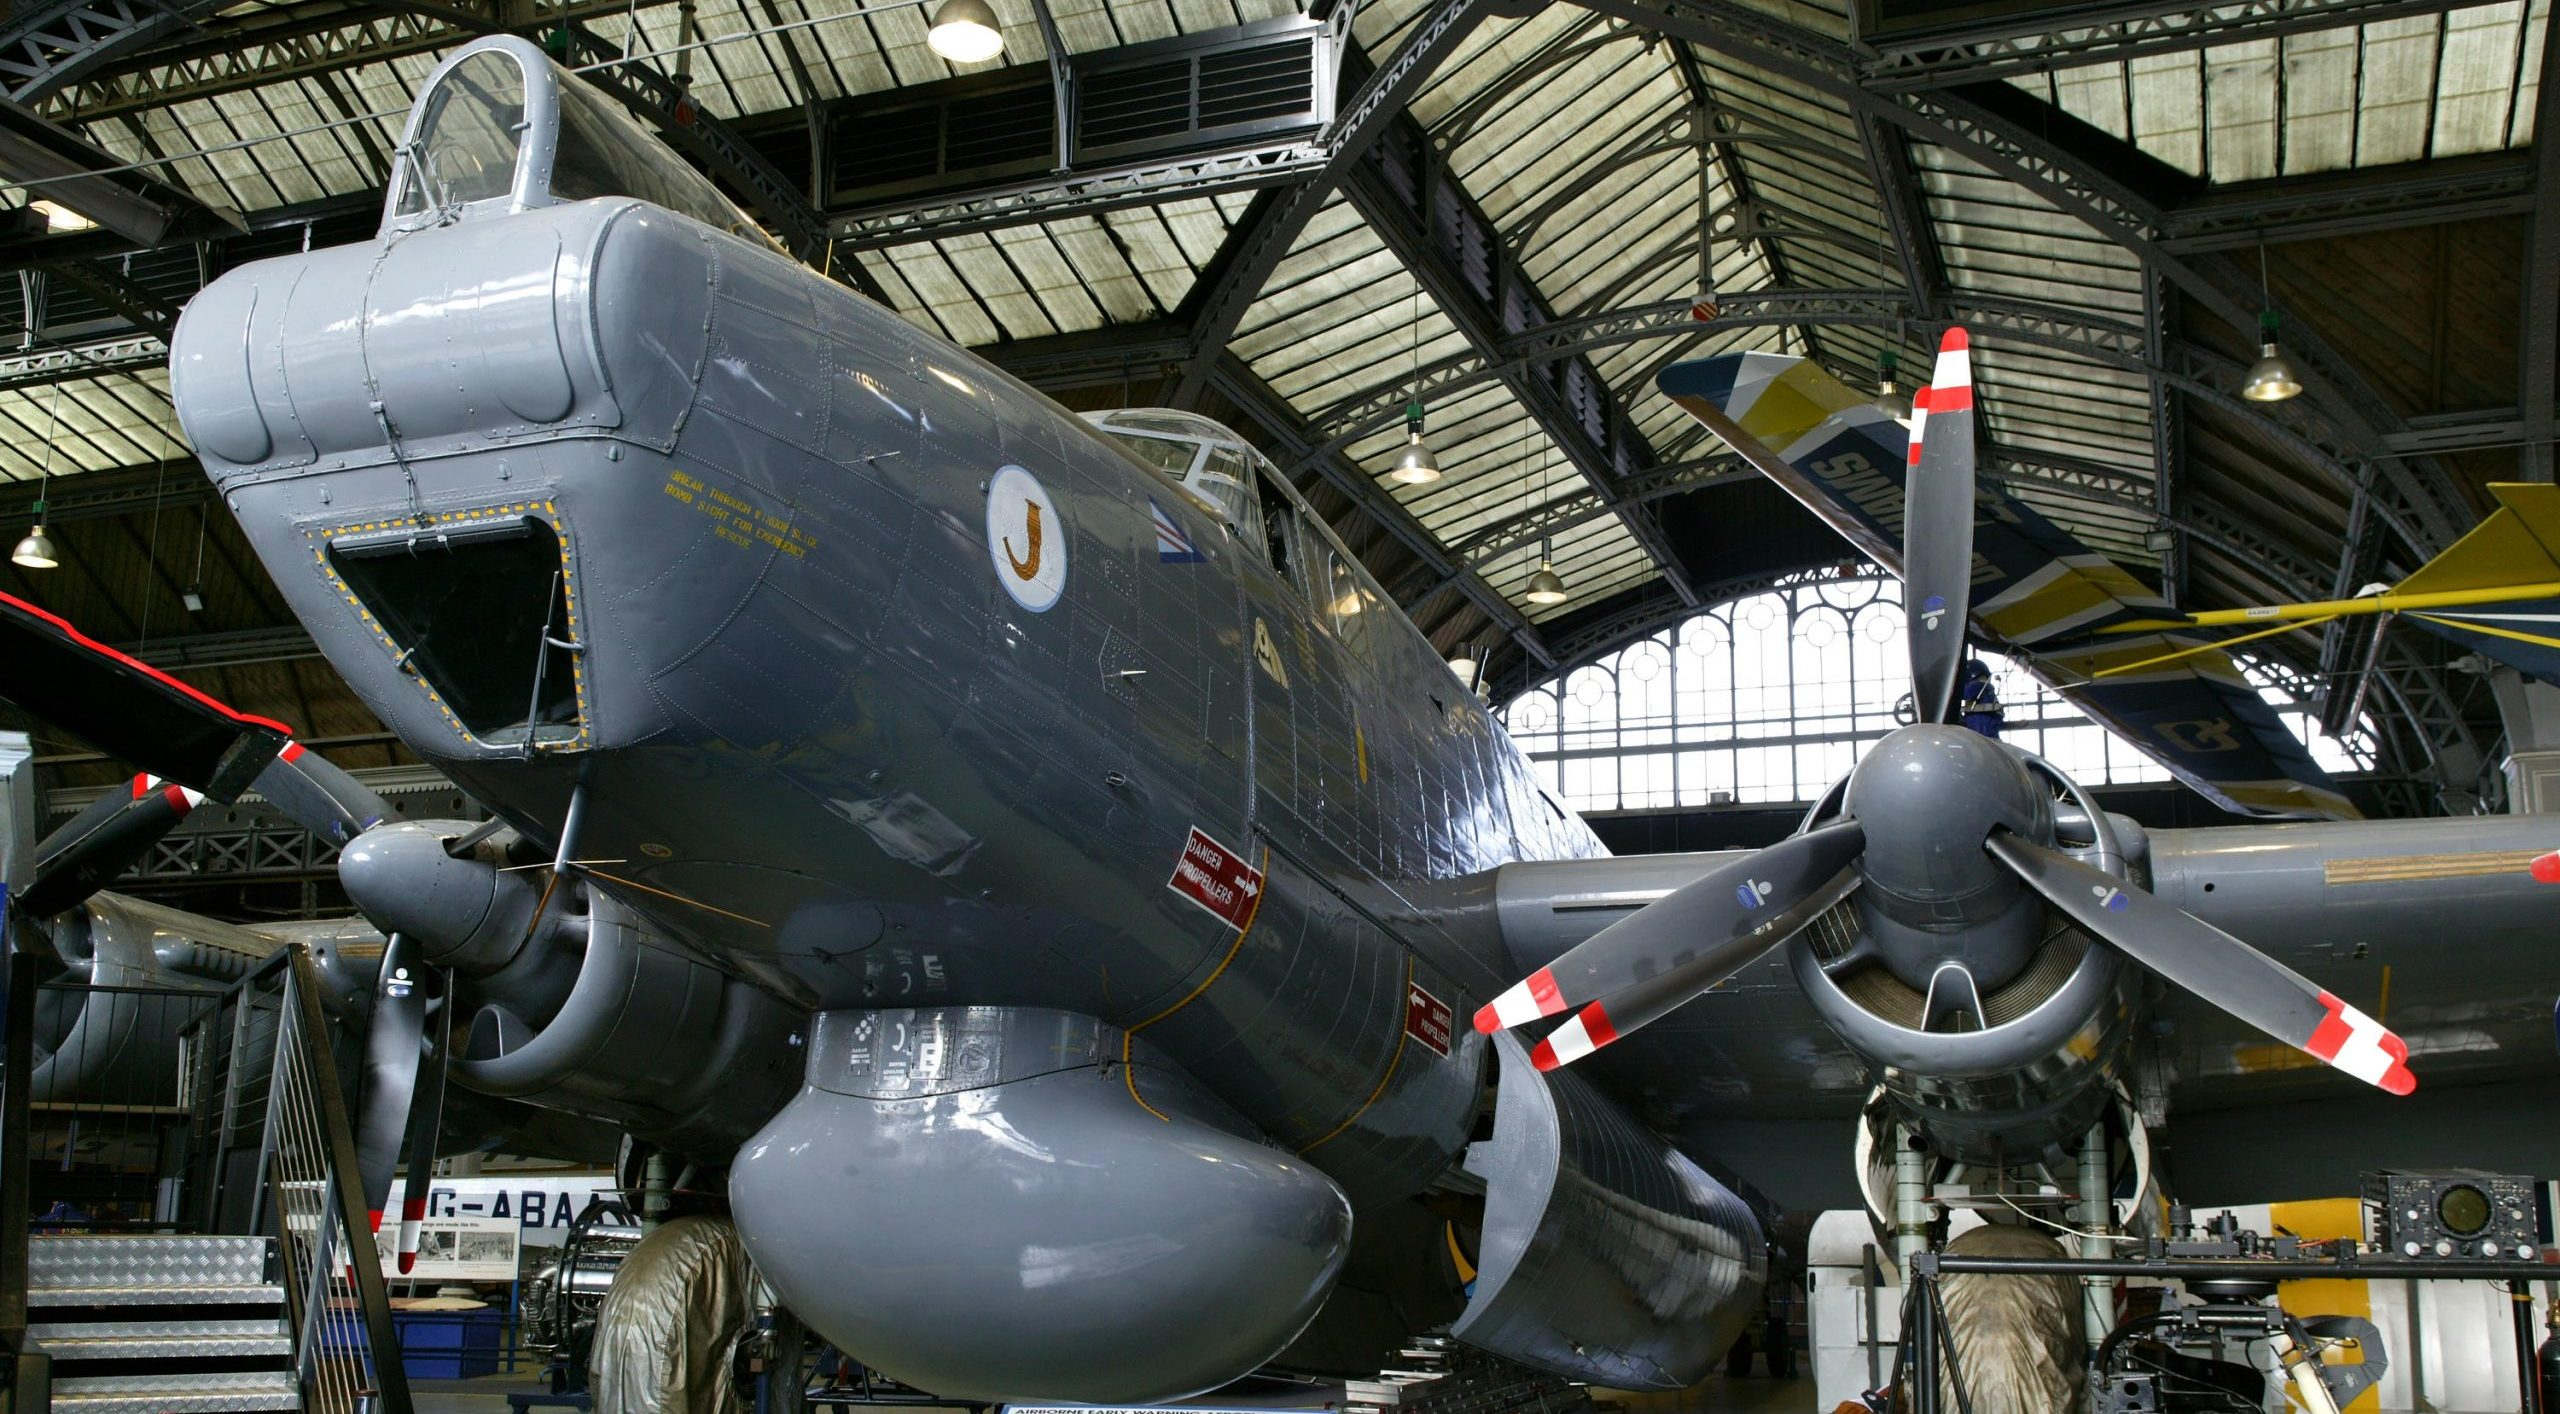 Exterior view of the Avro Shackleton A.E.W.2 reconnaissance aircraft,  Military Service No. WR 960, made by A. V. Roe & Co. Ltd, Woodford, 1954 on display in the Air and Space gallery.